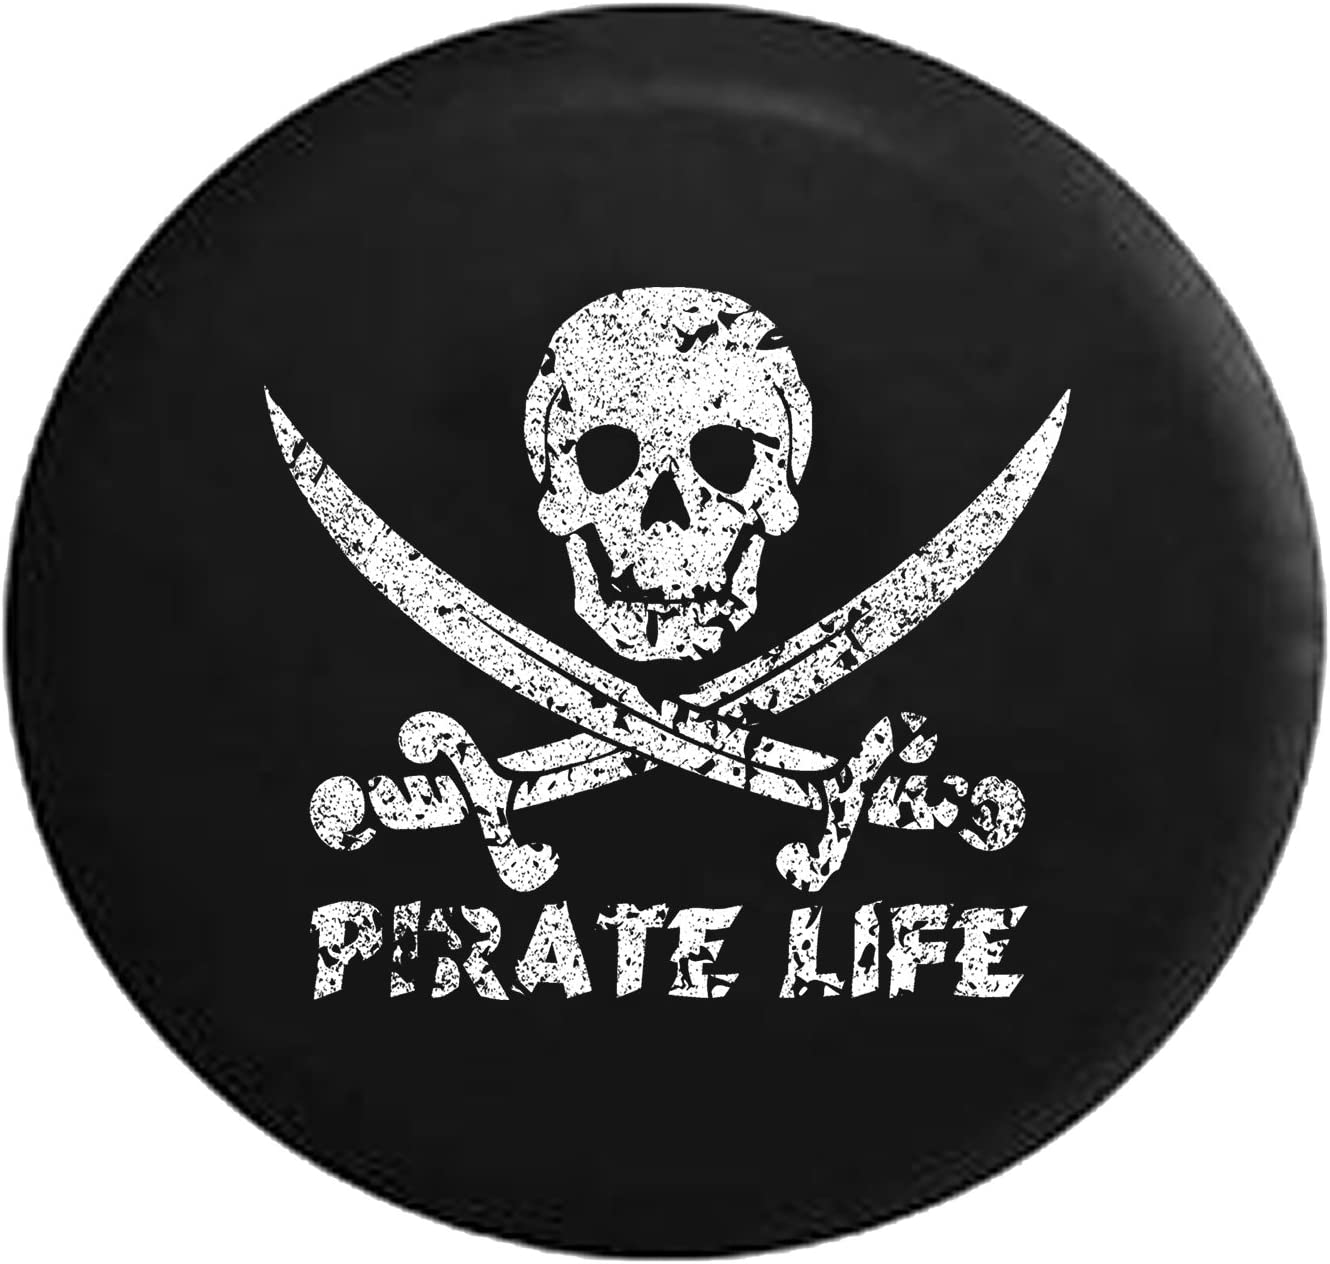 American Unlimited Spare Tire National New Shipping Free Shipping uniform free shipping Cover Life Pirate Distressed Skull